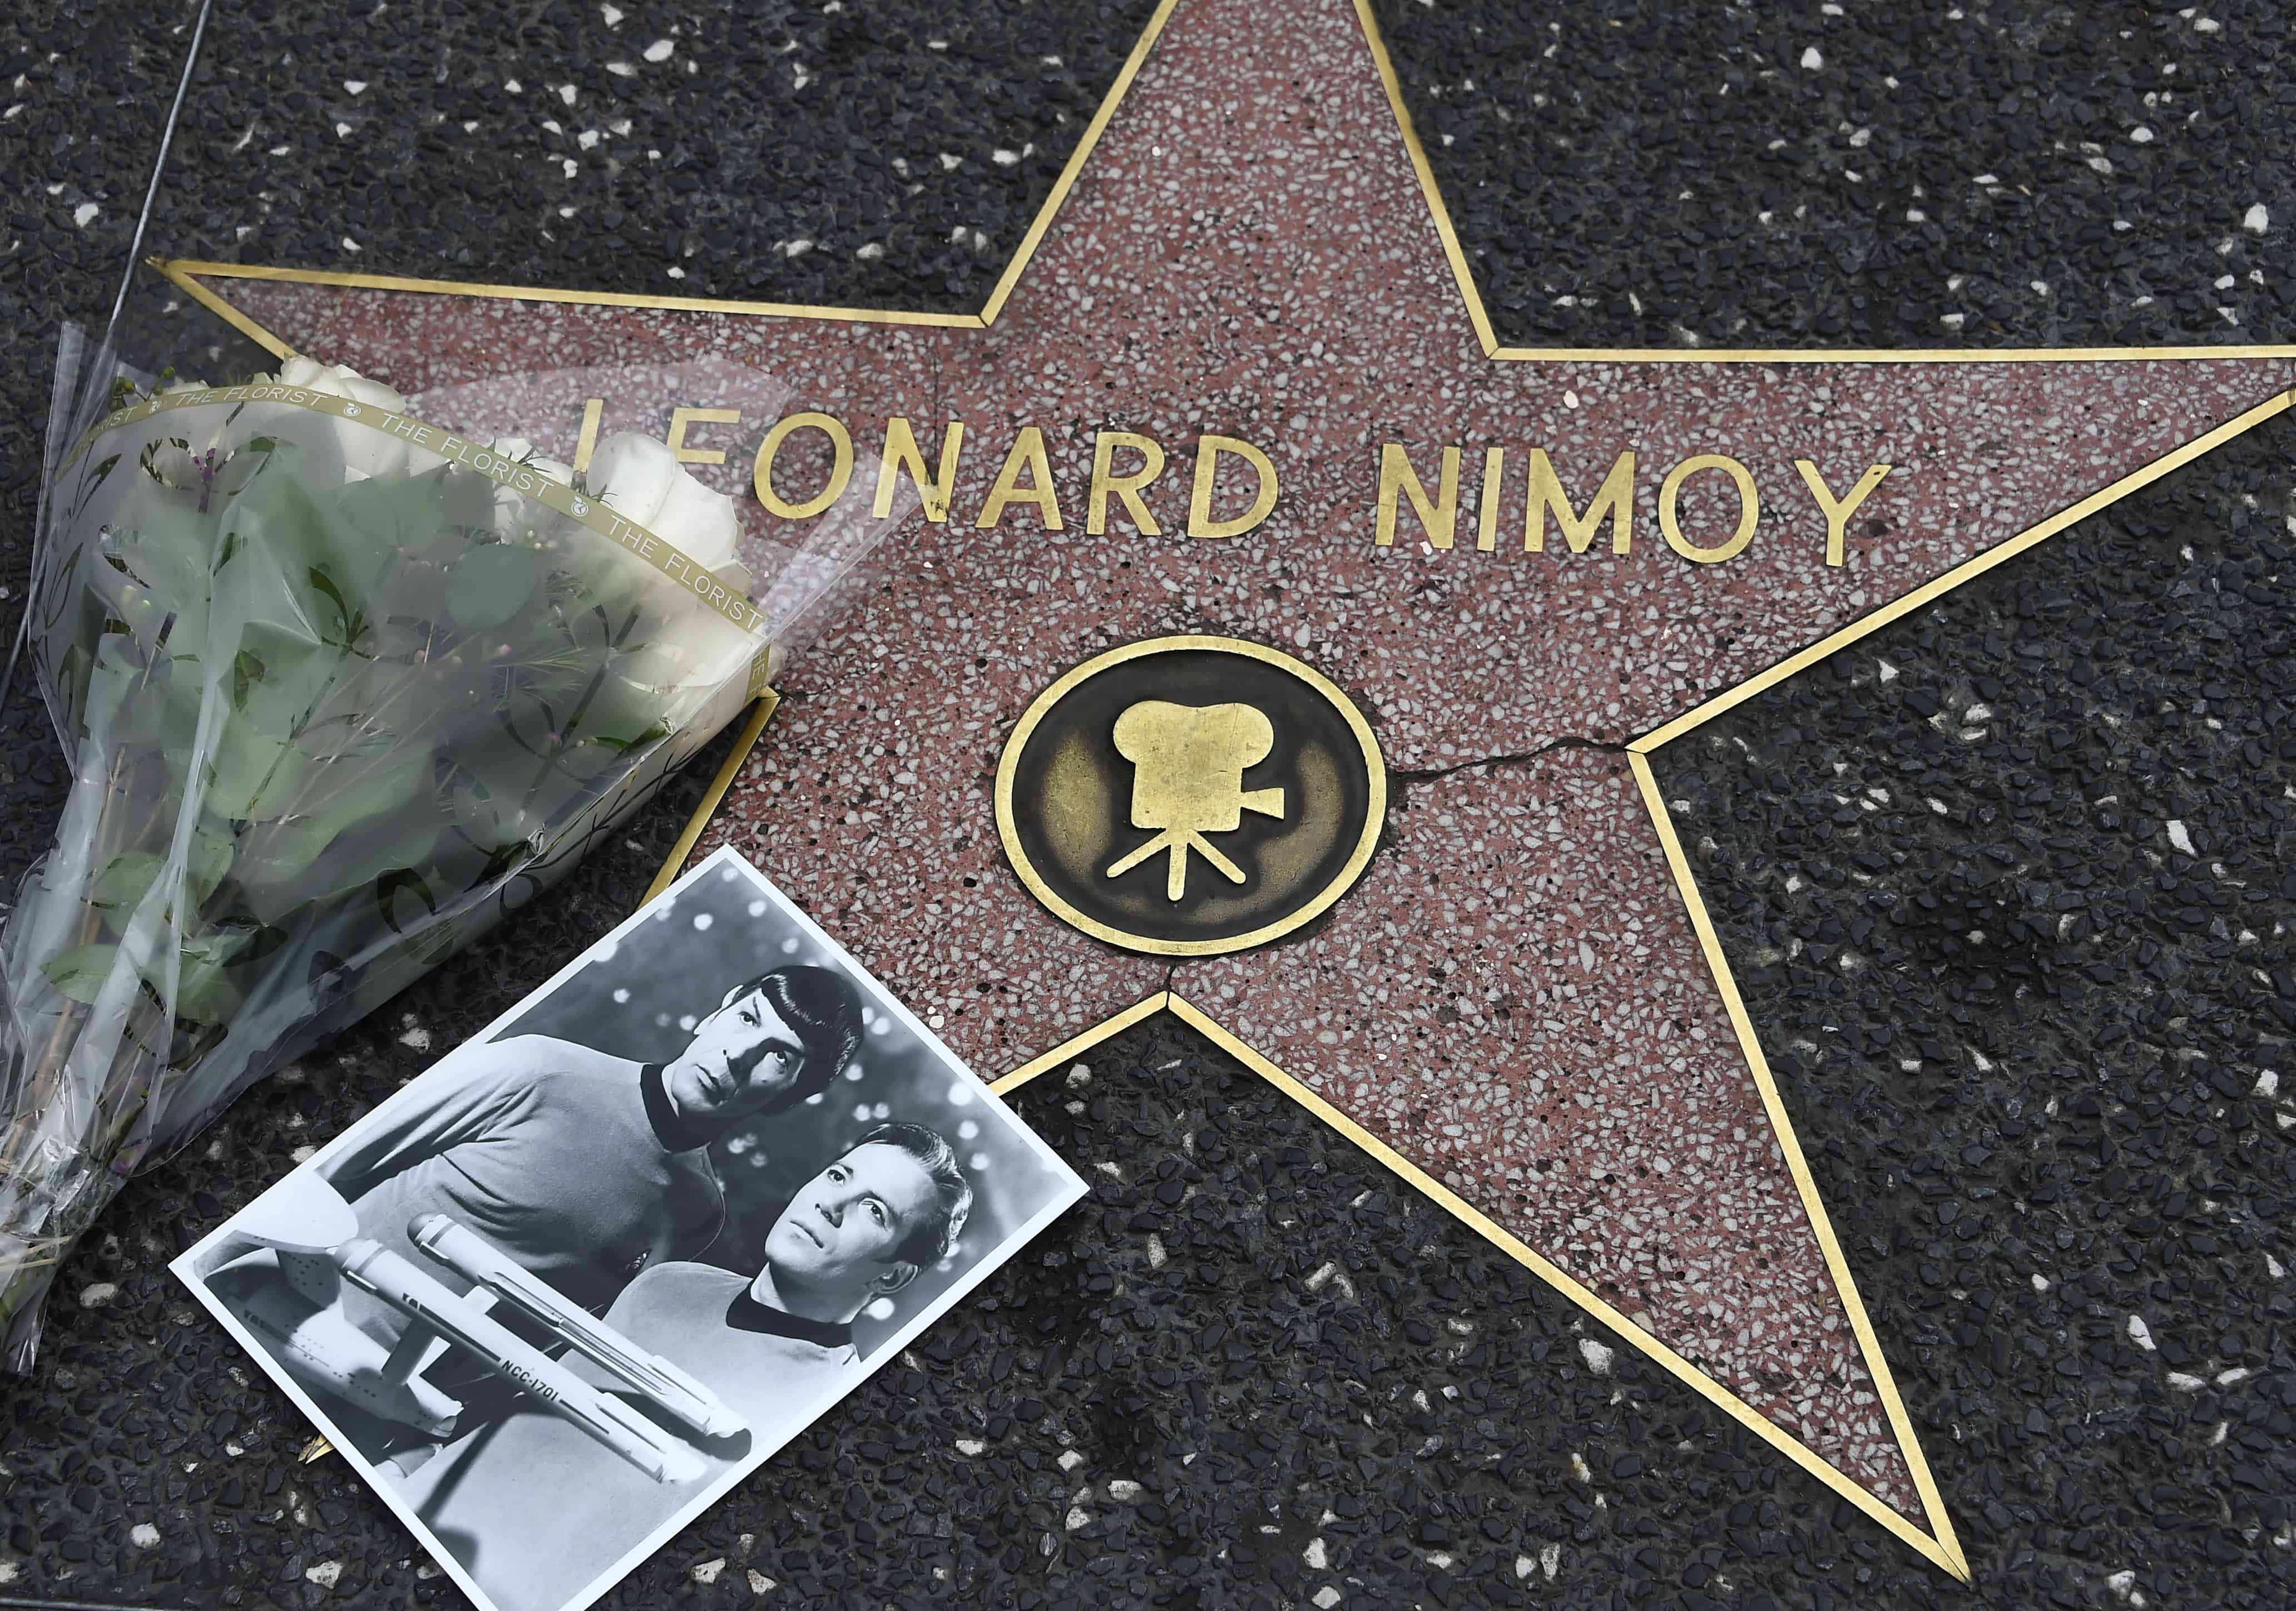 Flowers are placed on the star of actor Leonard Nimoy, Feb. 27, 2015 on the Hollywood Walk of Fame, in Hollywood, California.